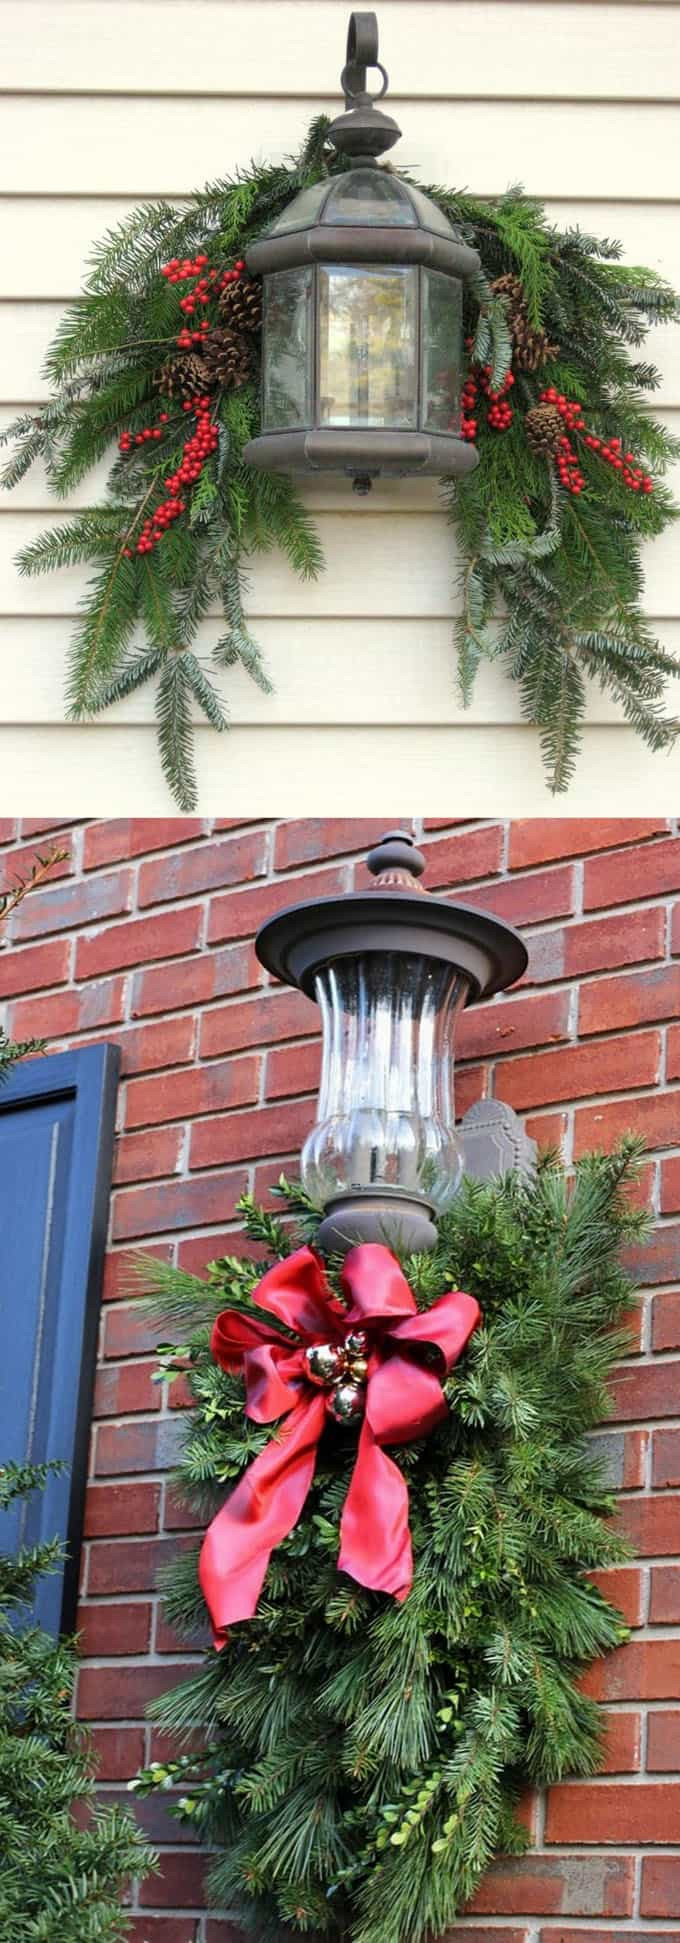 DIY Outdoor Xmas Decorations  Gorgeous Outdoor Christmas Decorations 32 Best Ideas